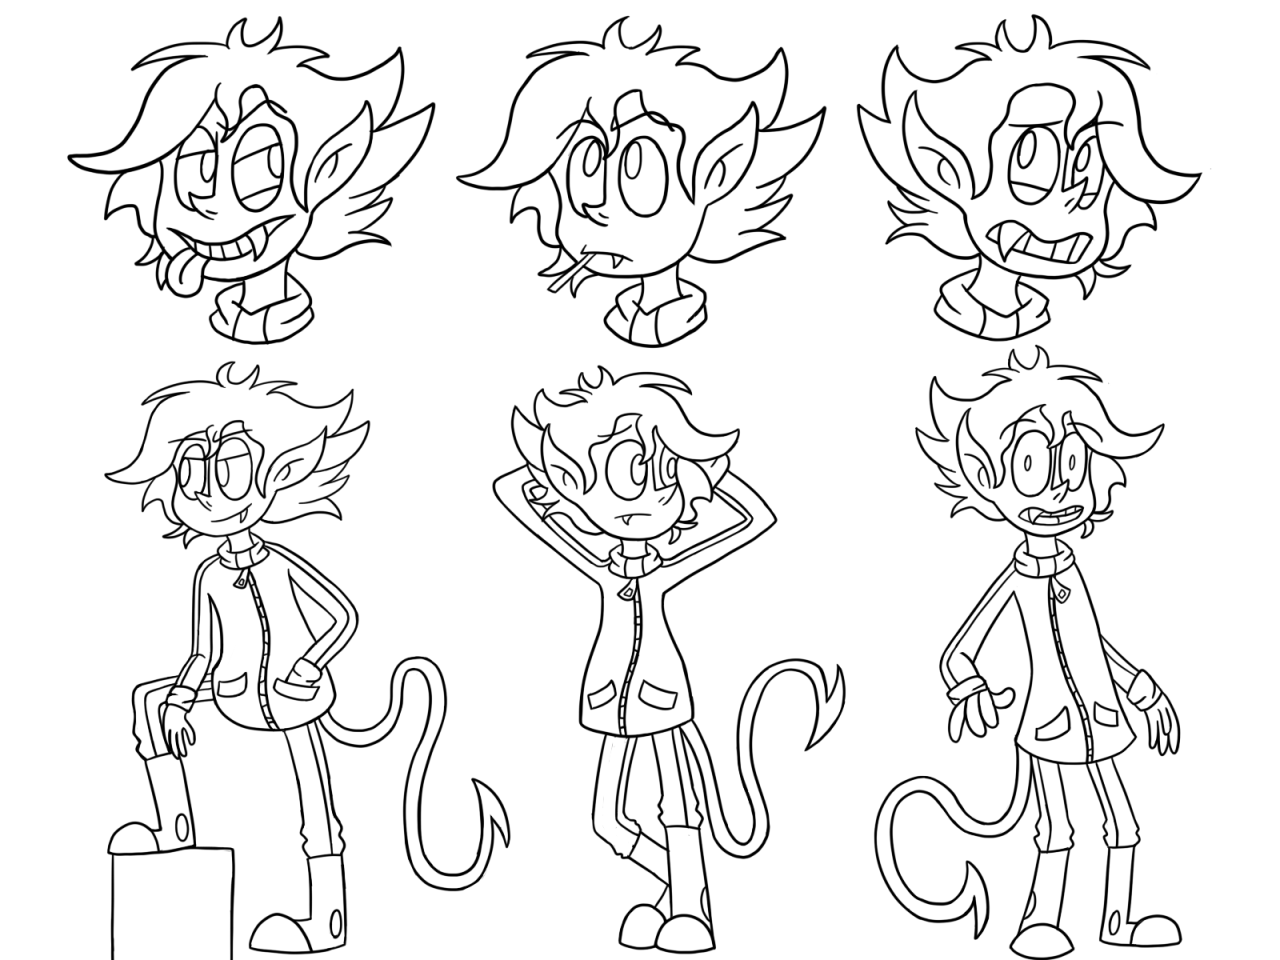 King T (Expressions/Poses)